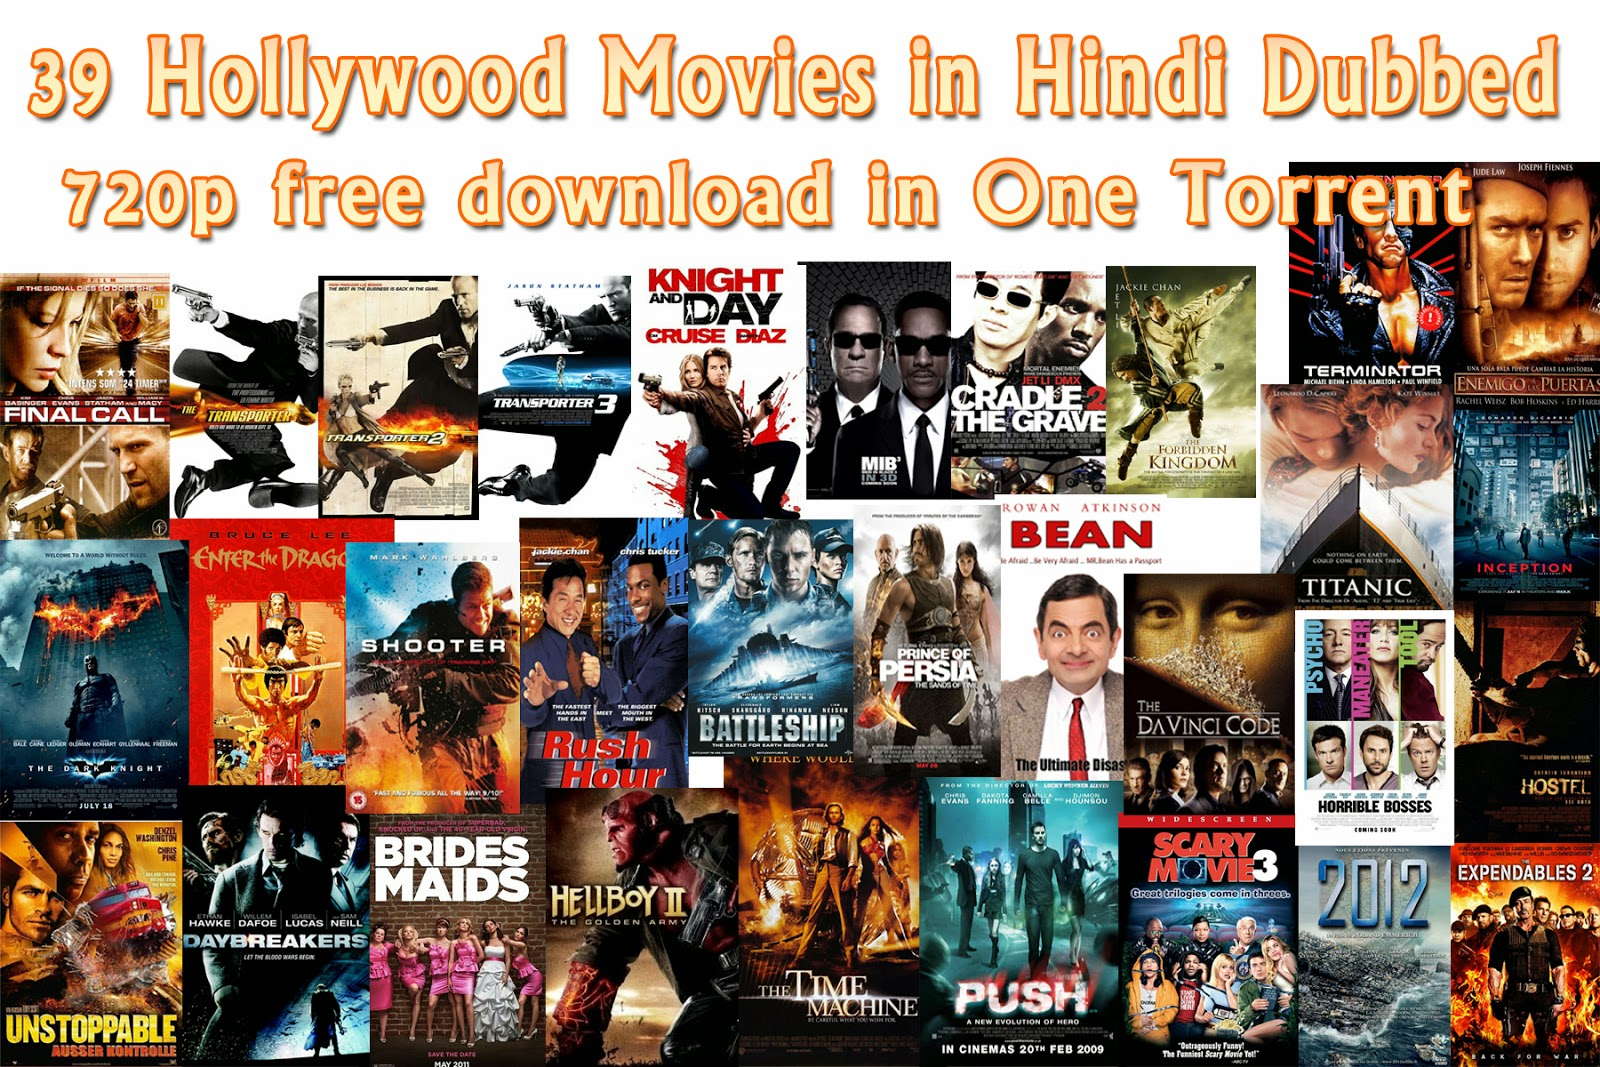 directly download free hollywood movies in hd for pc tablet mkv, mp4